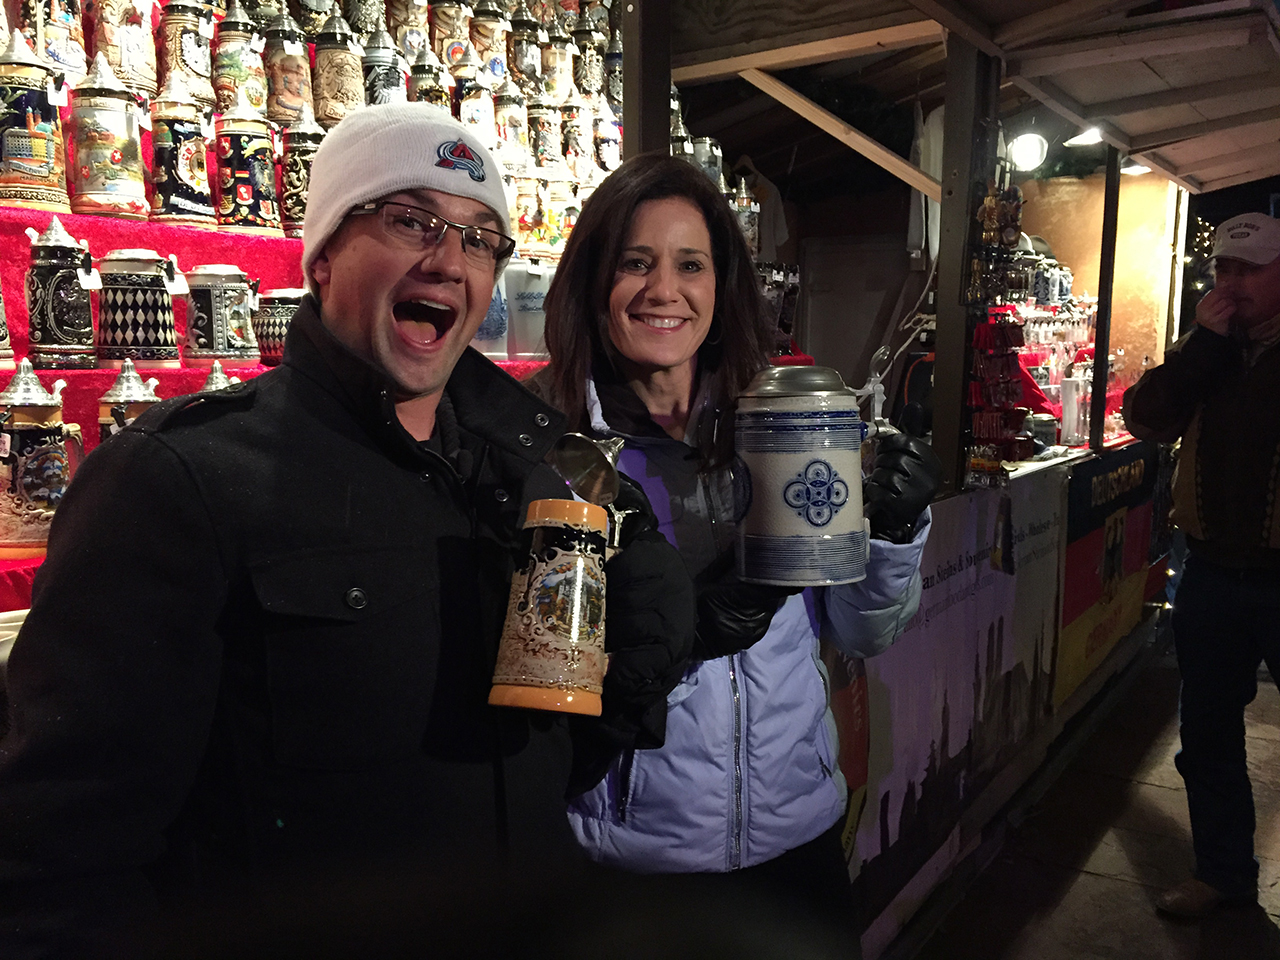 Christkindl-Market-Downtown-Denver-Steins-1280x960.jpg